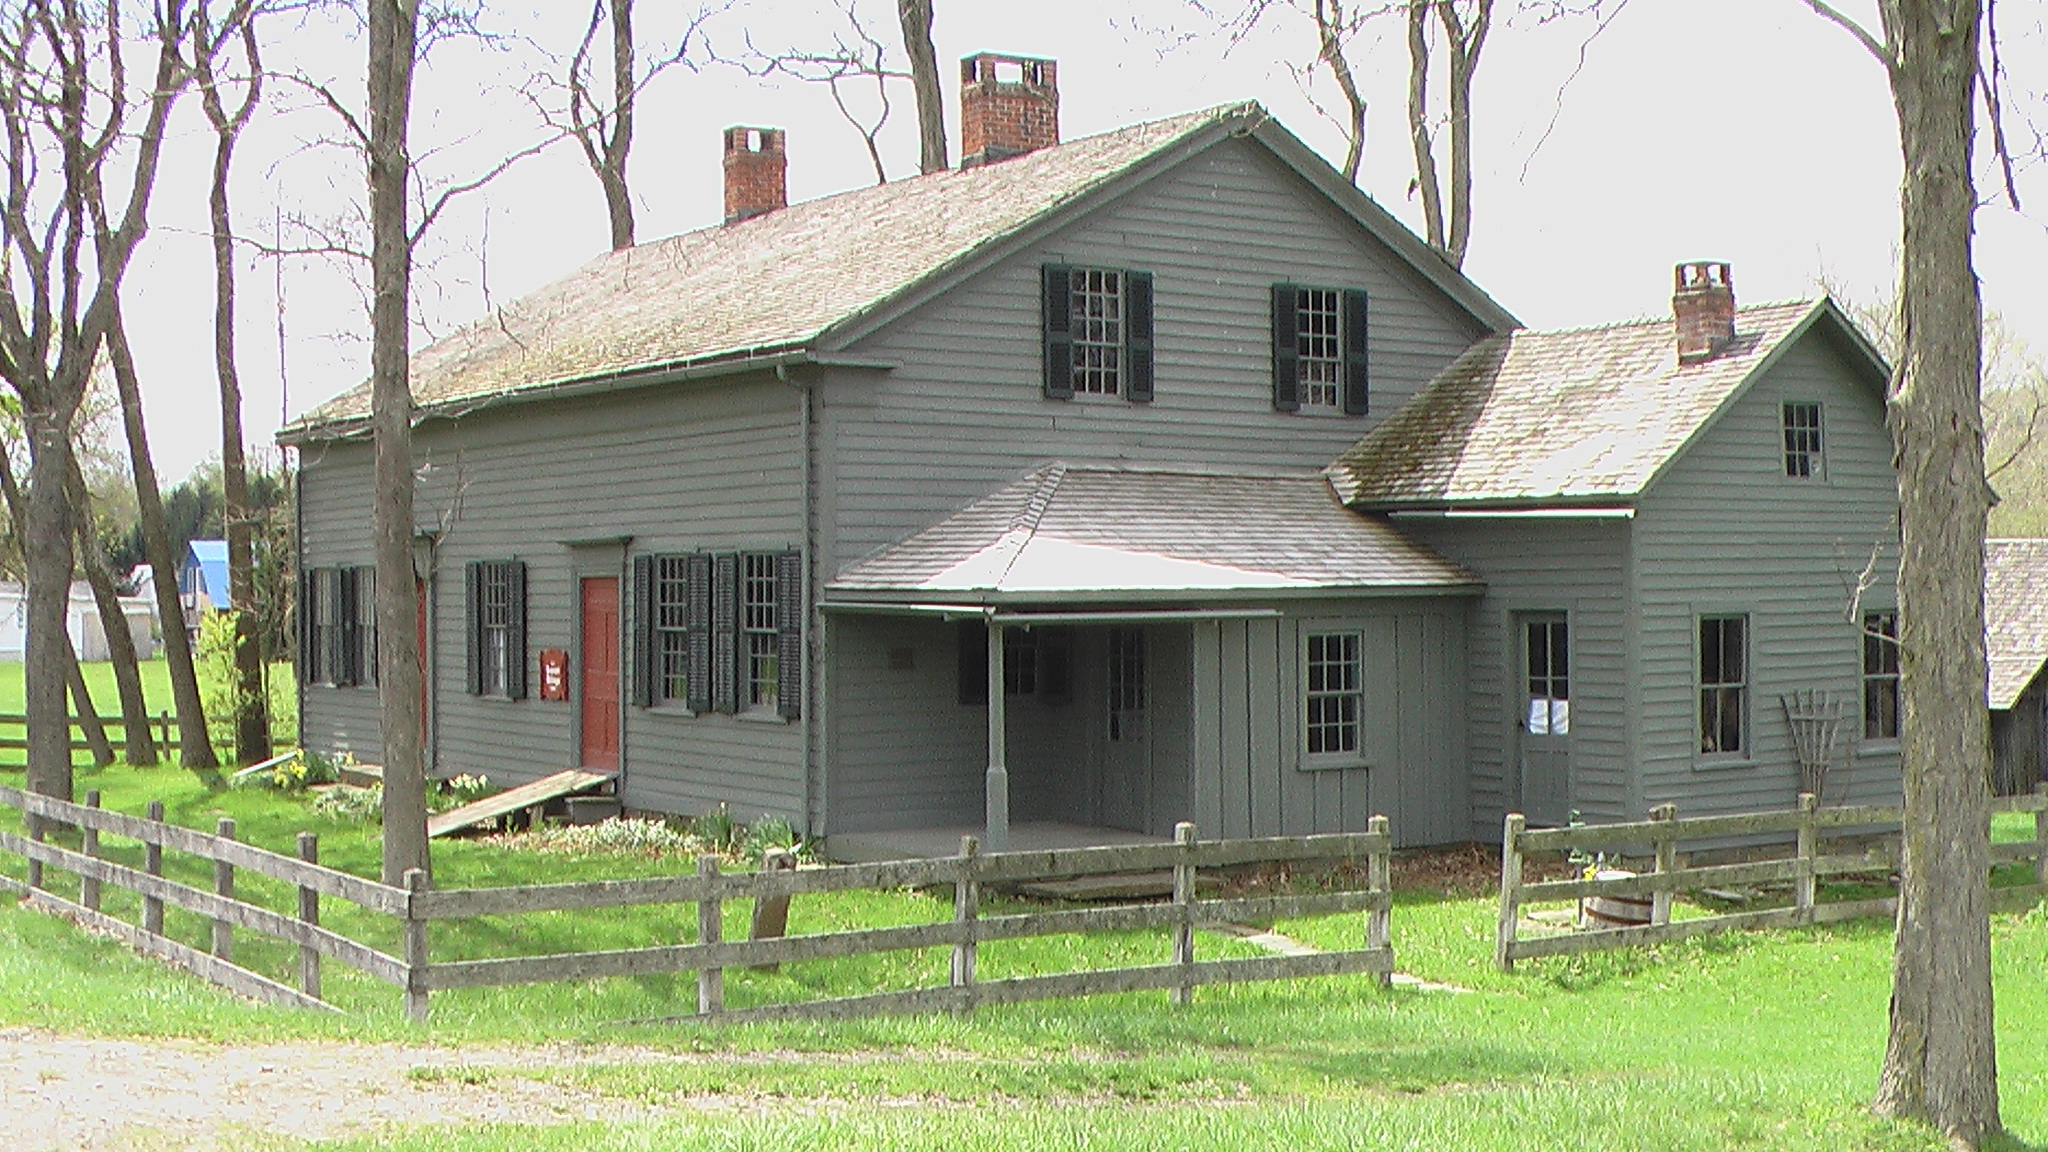 The Bement-Billings House was originally built in 1796.